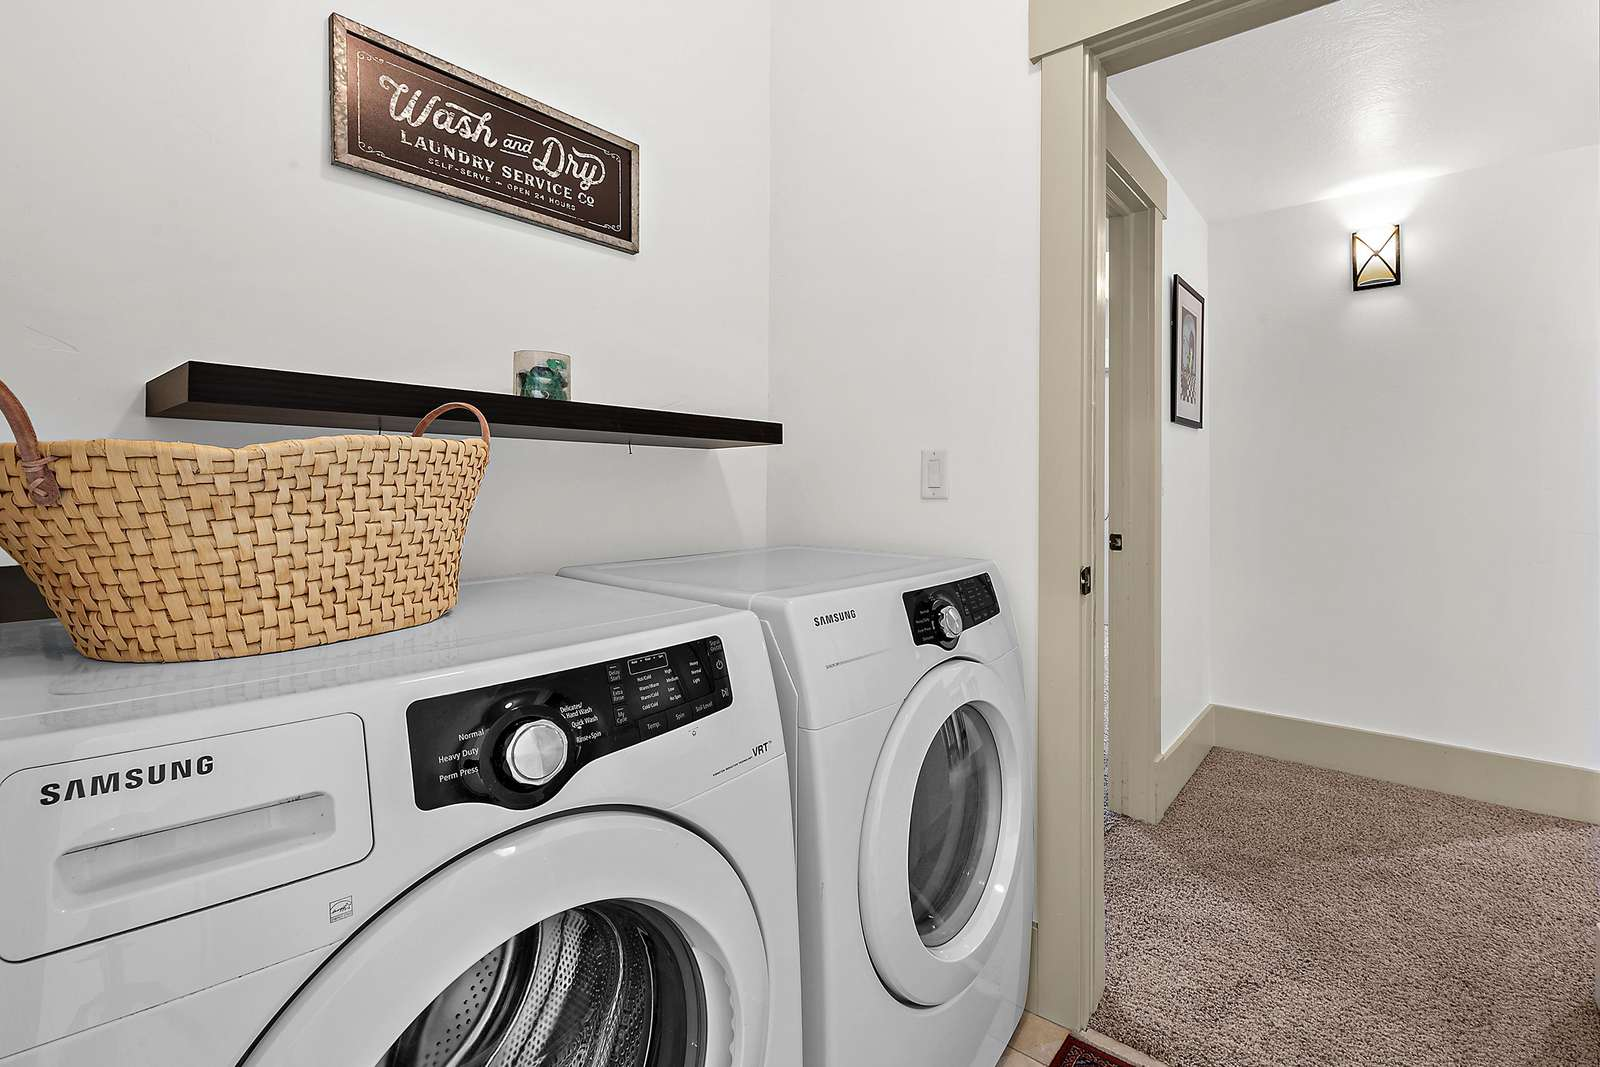 Private washer and dryer available